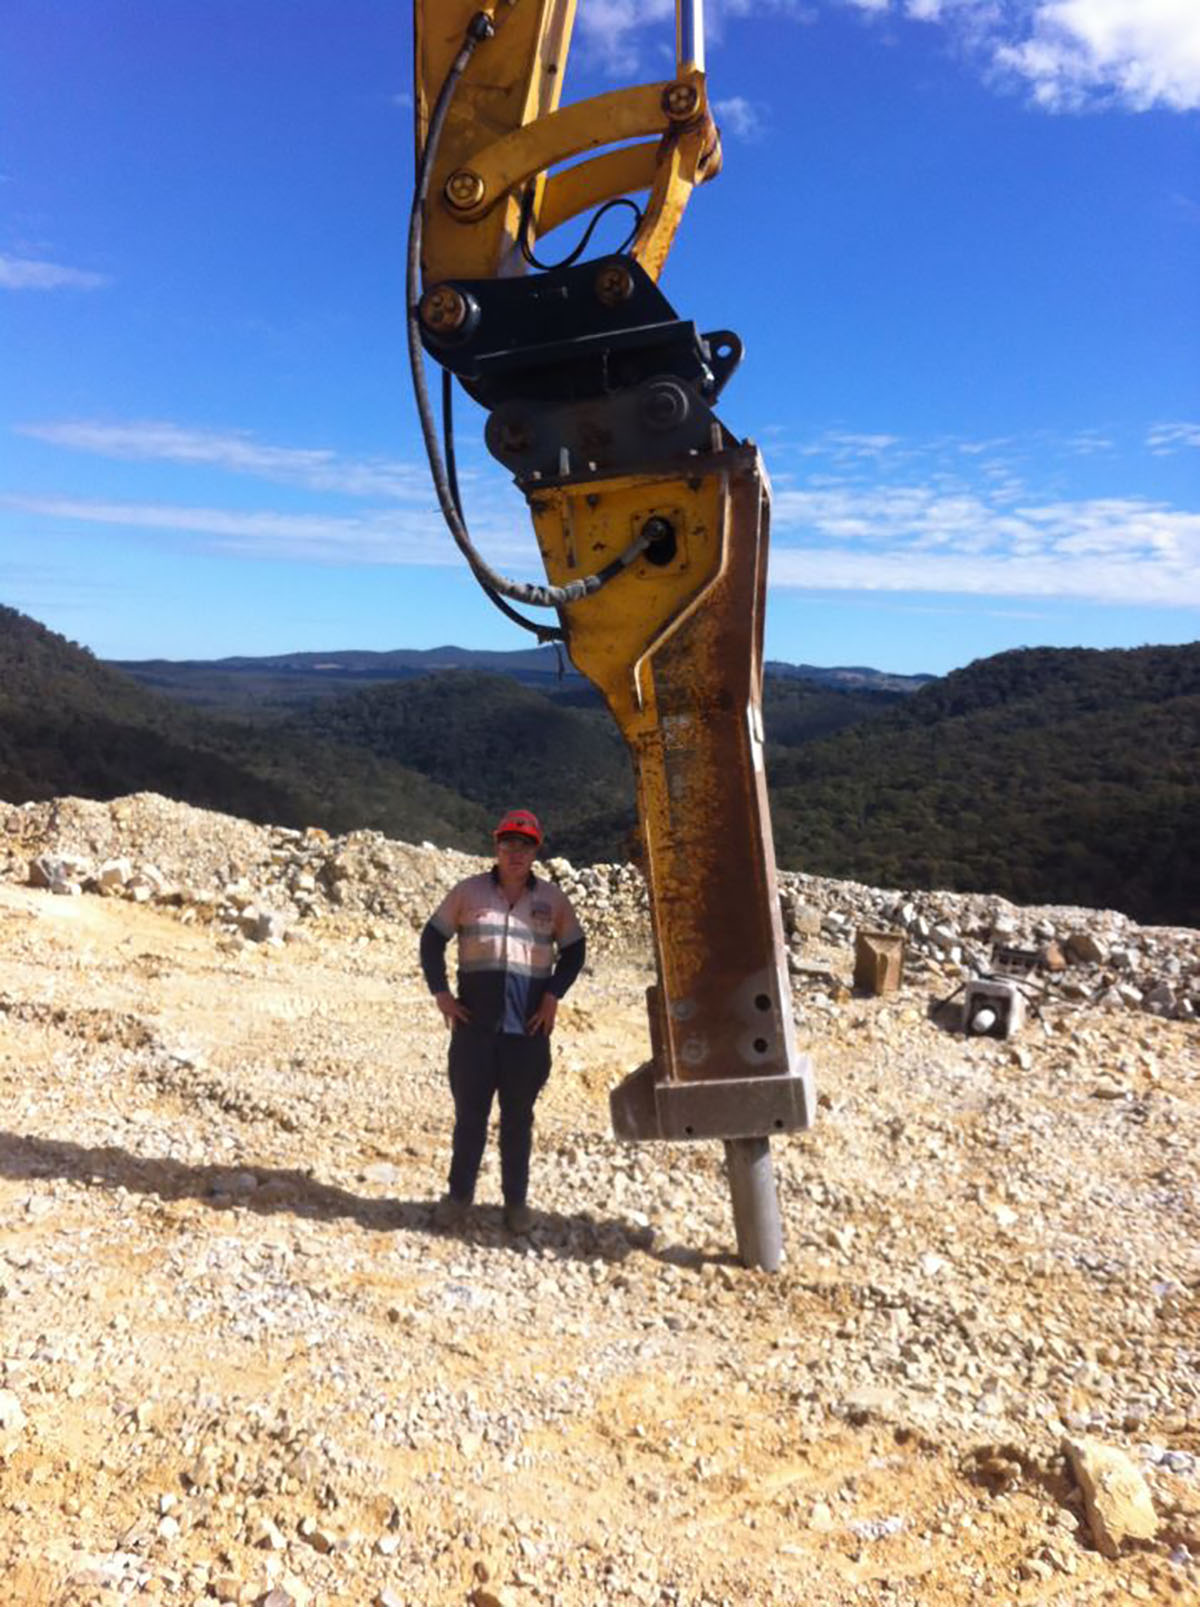 Peters Earthmoving operator standing next to rock hammer